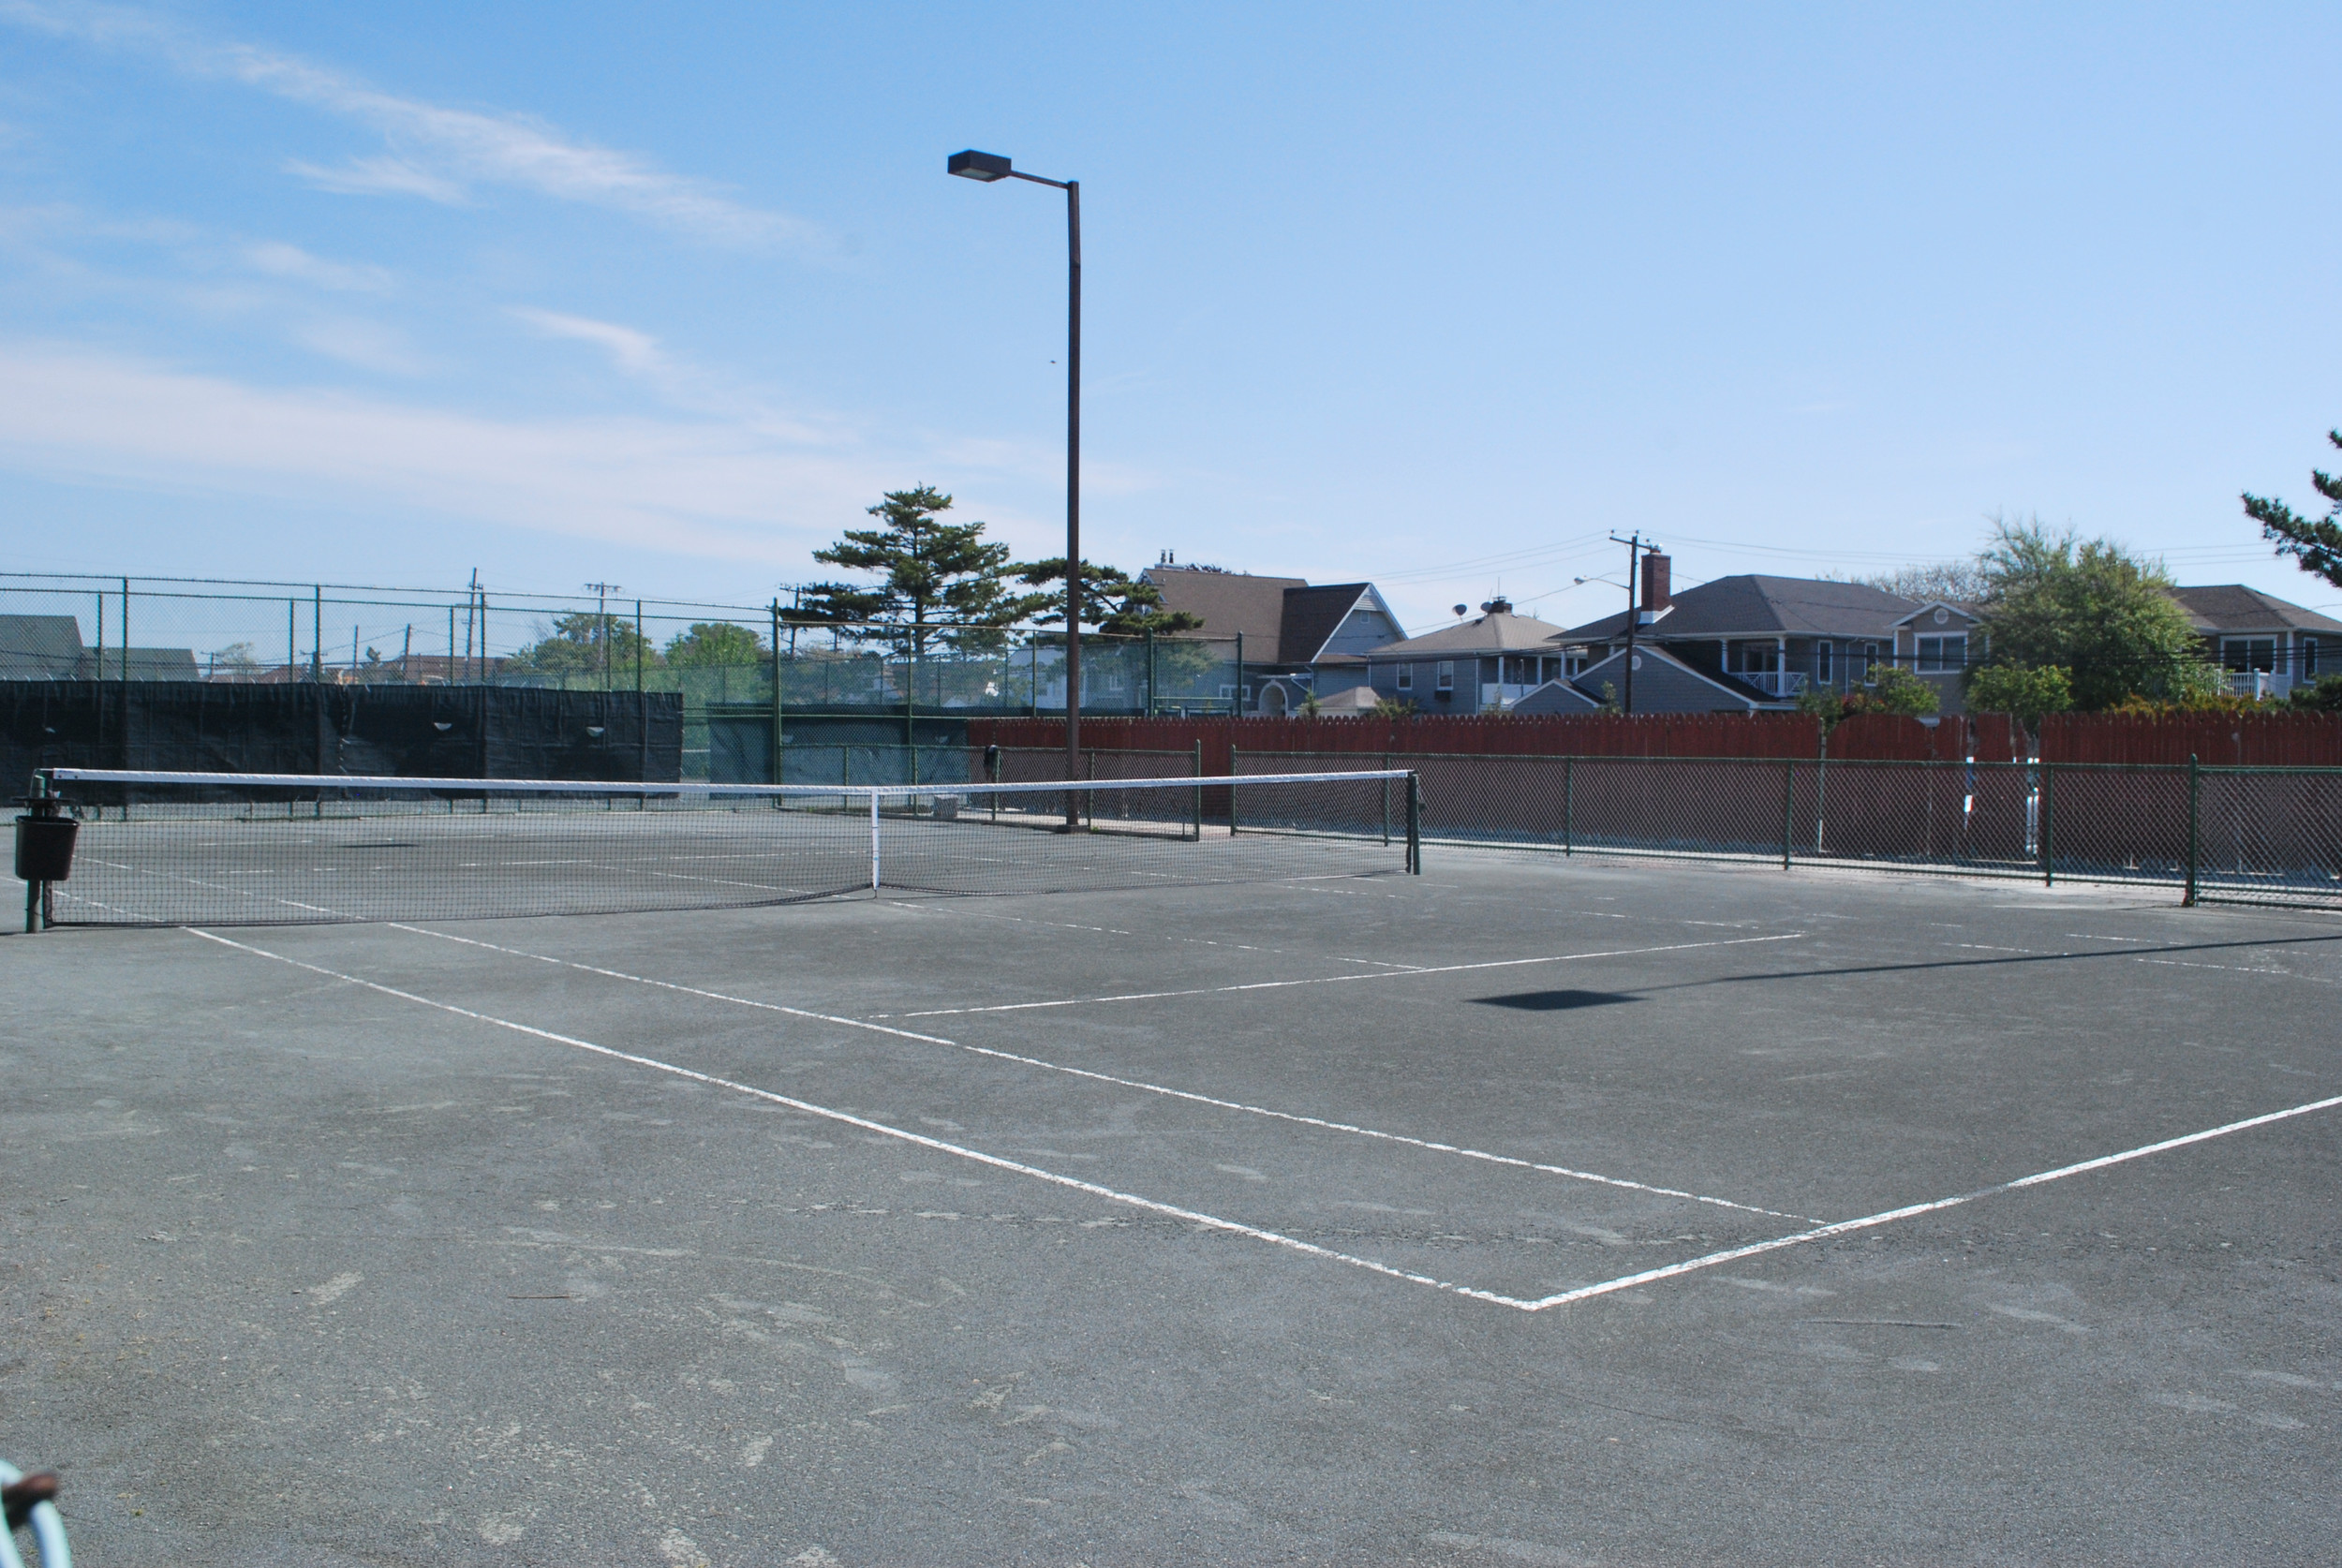 Center Court is one of 13 playing areas at the Atlantic Beach Tennis Center.